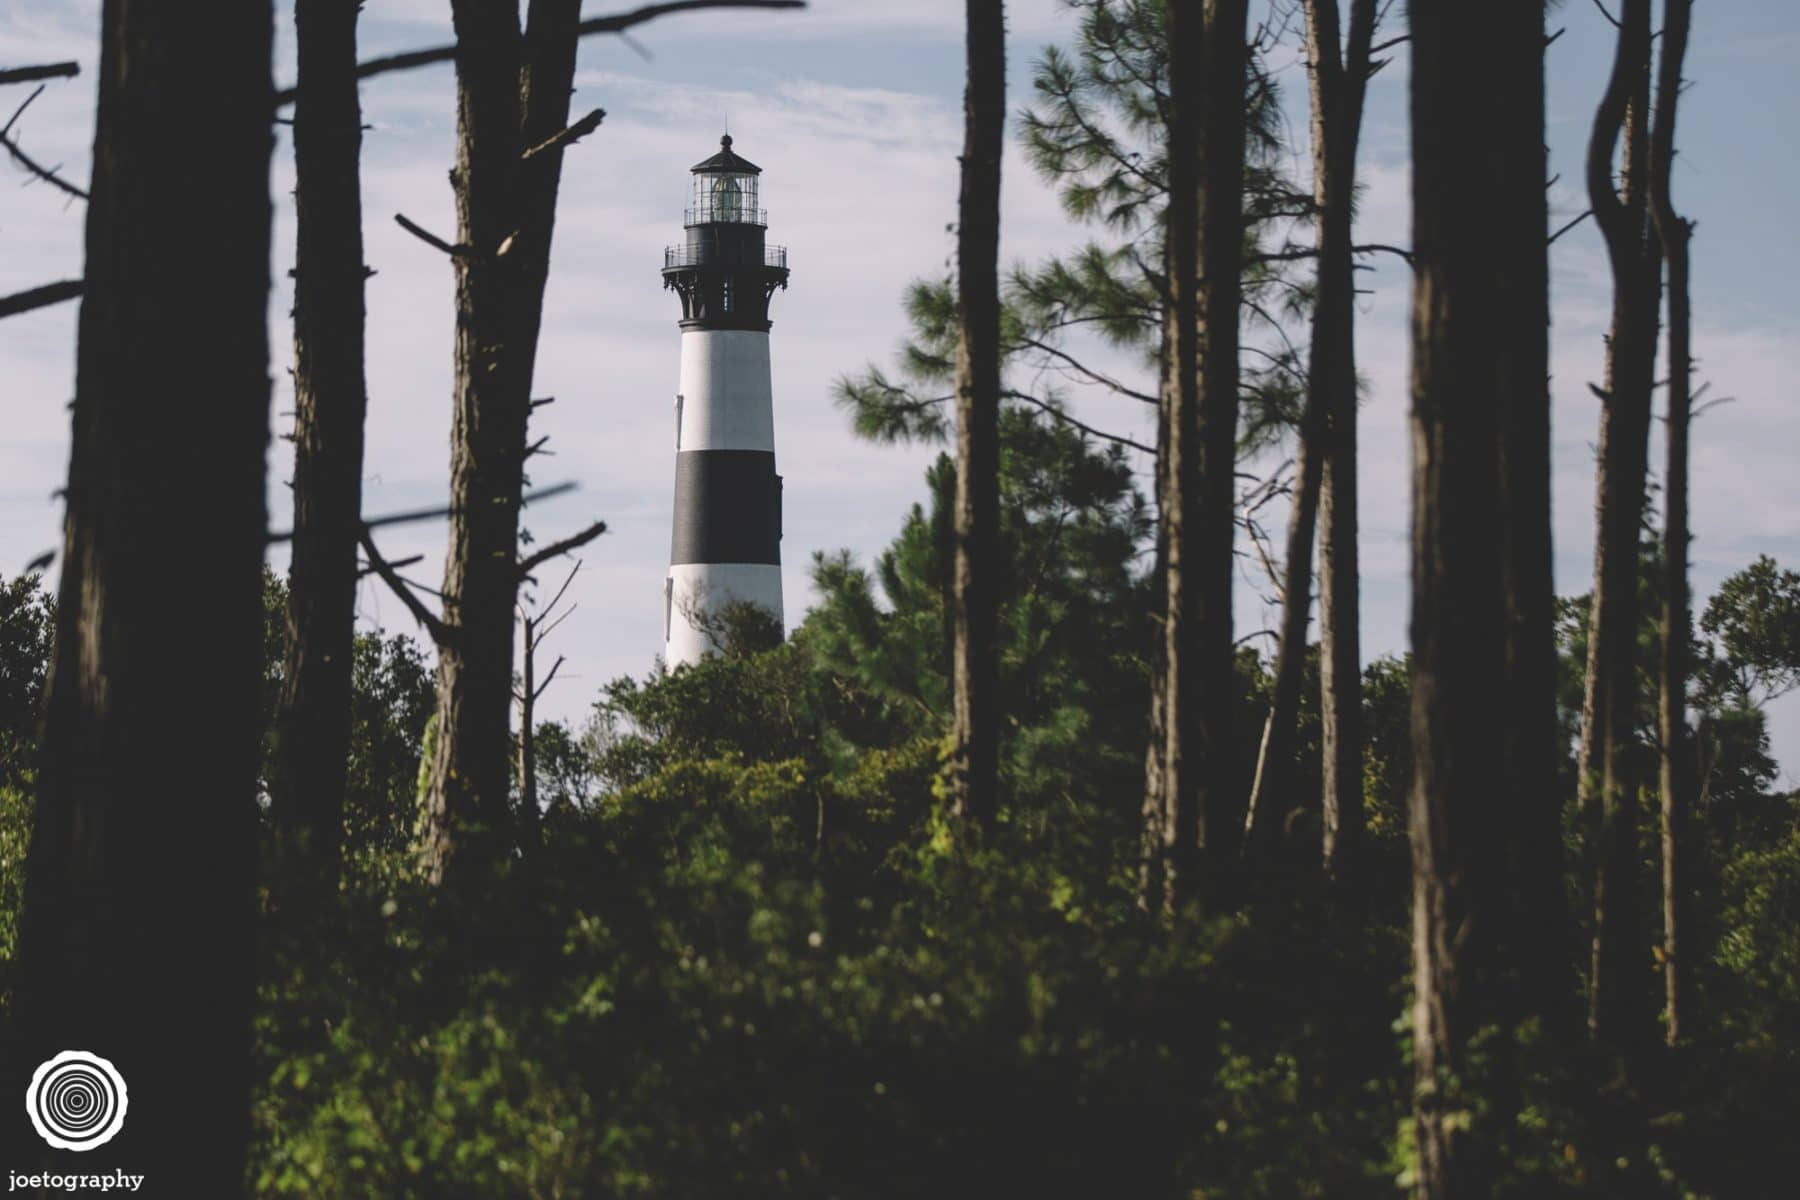 Outer-Banks-North-Carolina-Travel-Photography-50